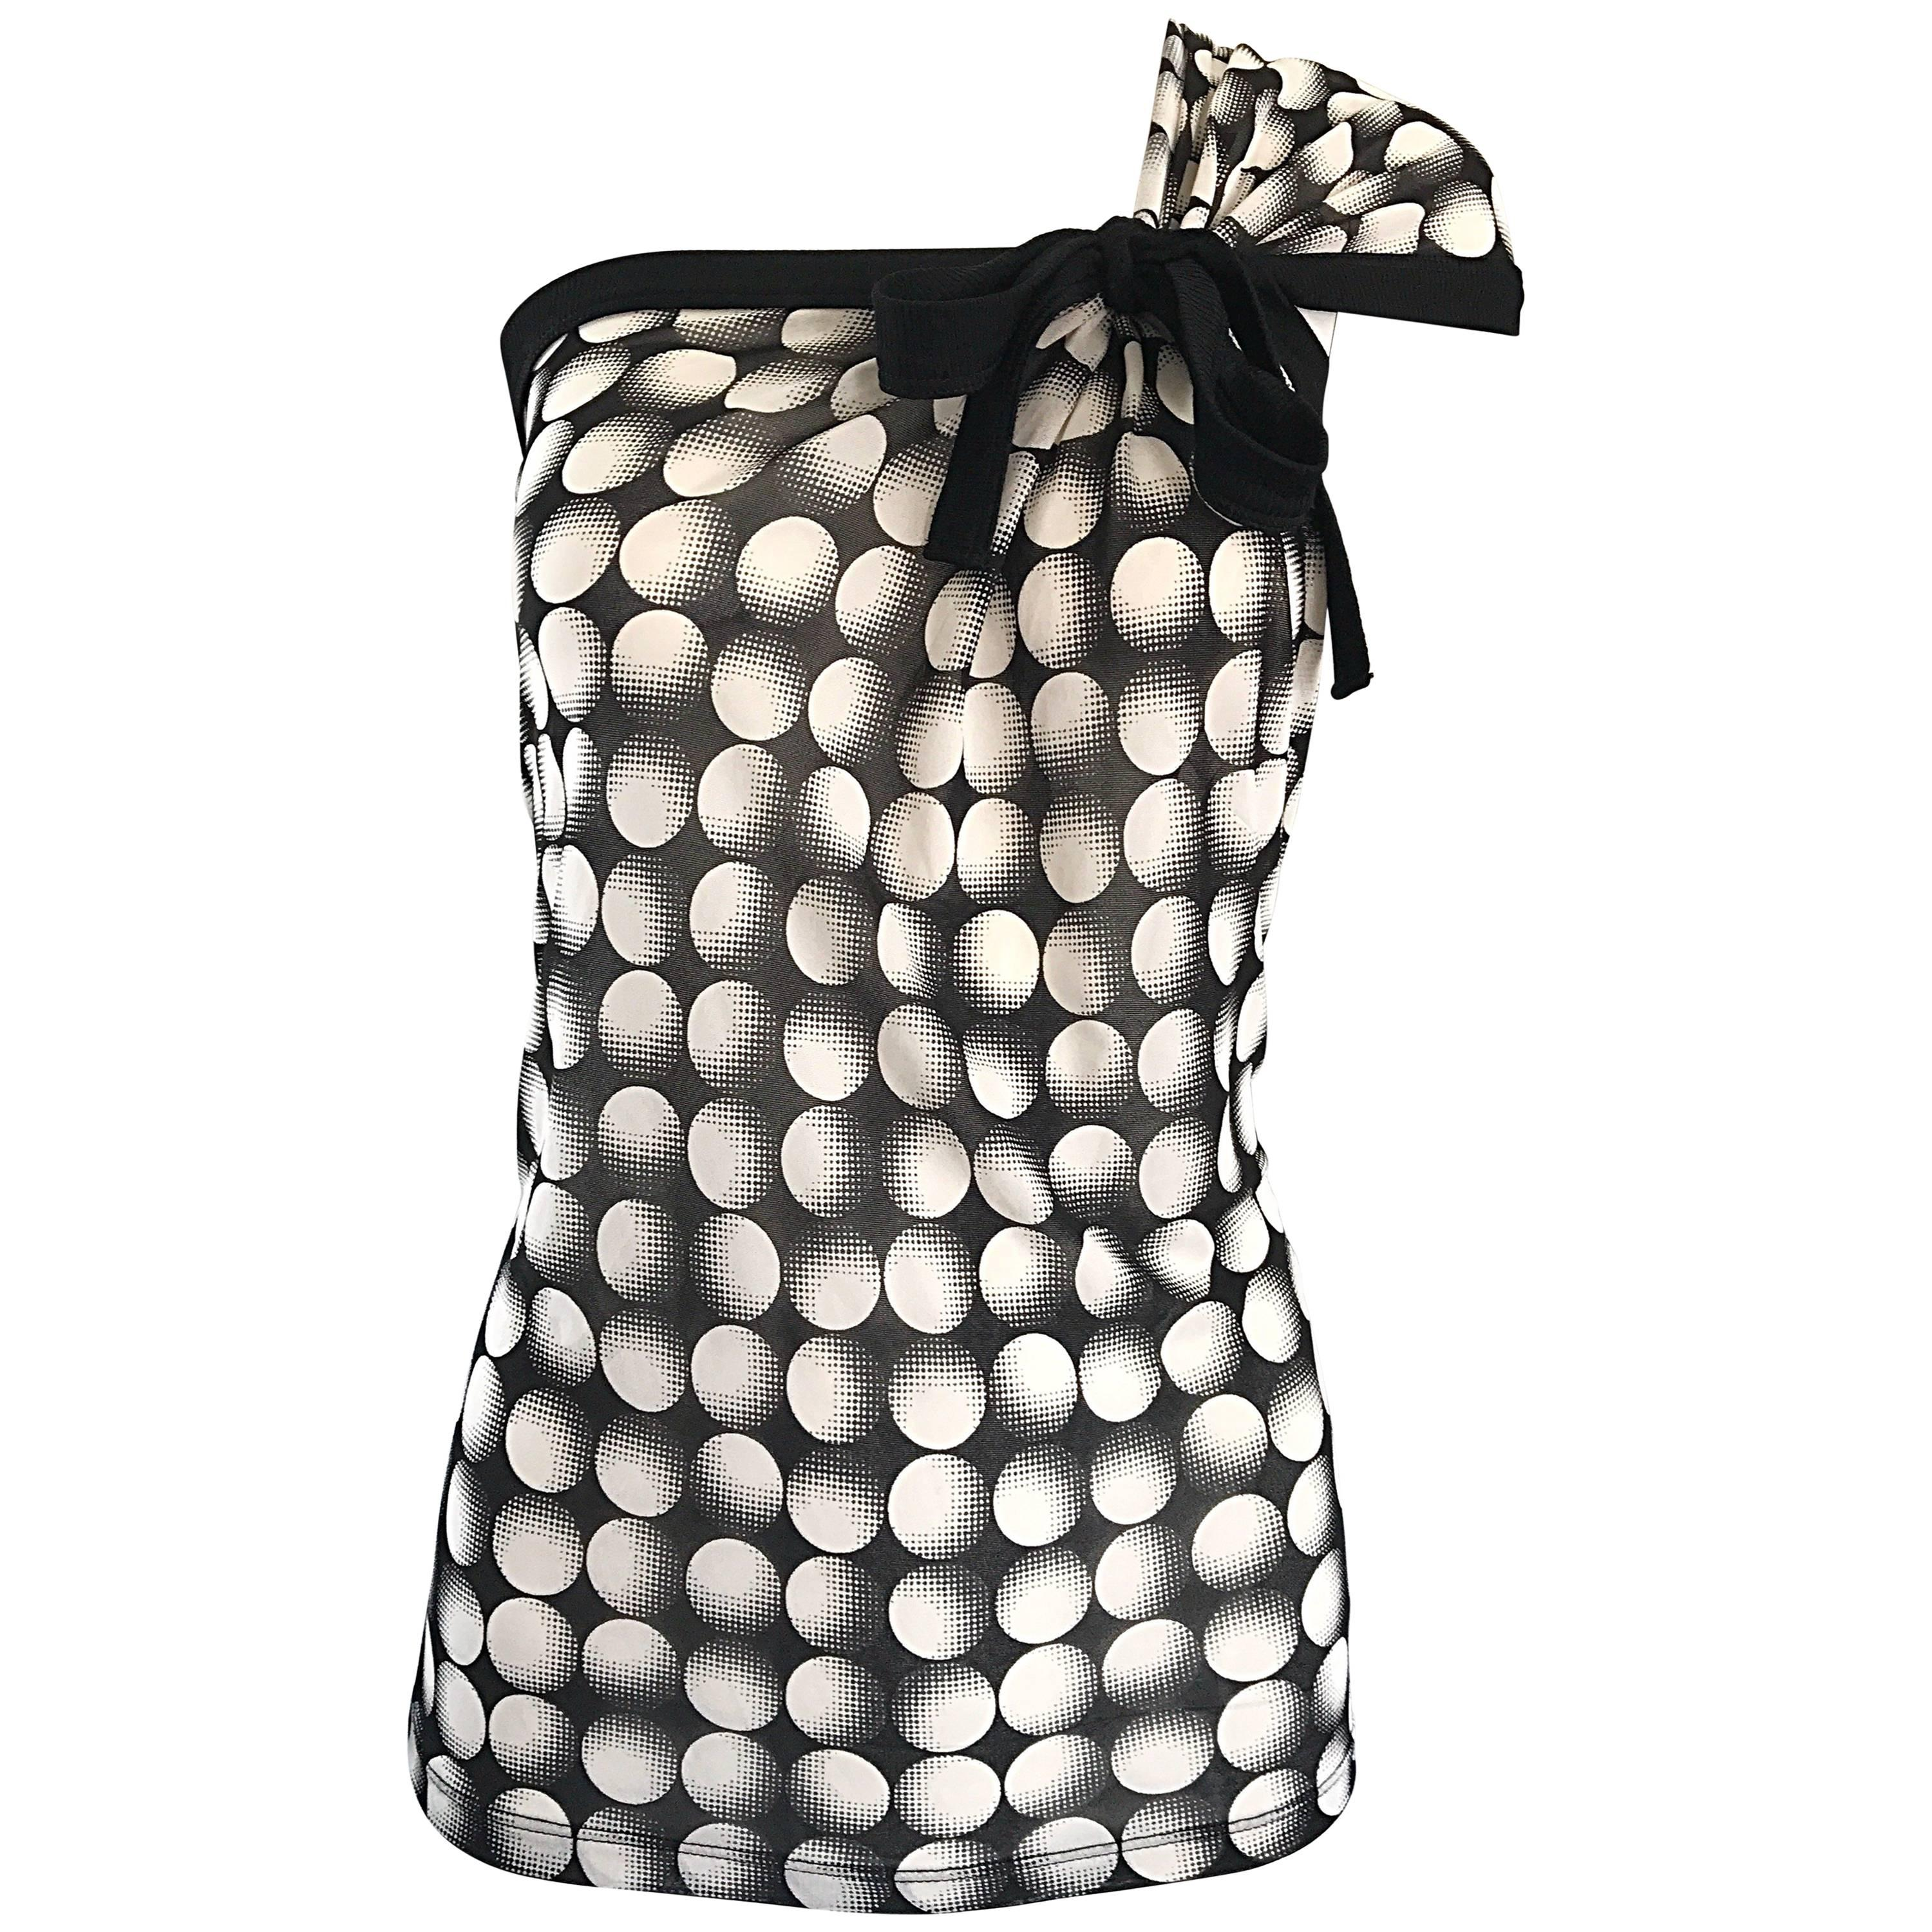 Jean Paul Gaultier New 1990s Black and White Size Large One Shoulder Op Art Top